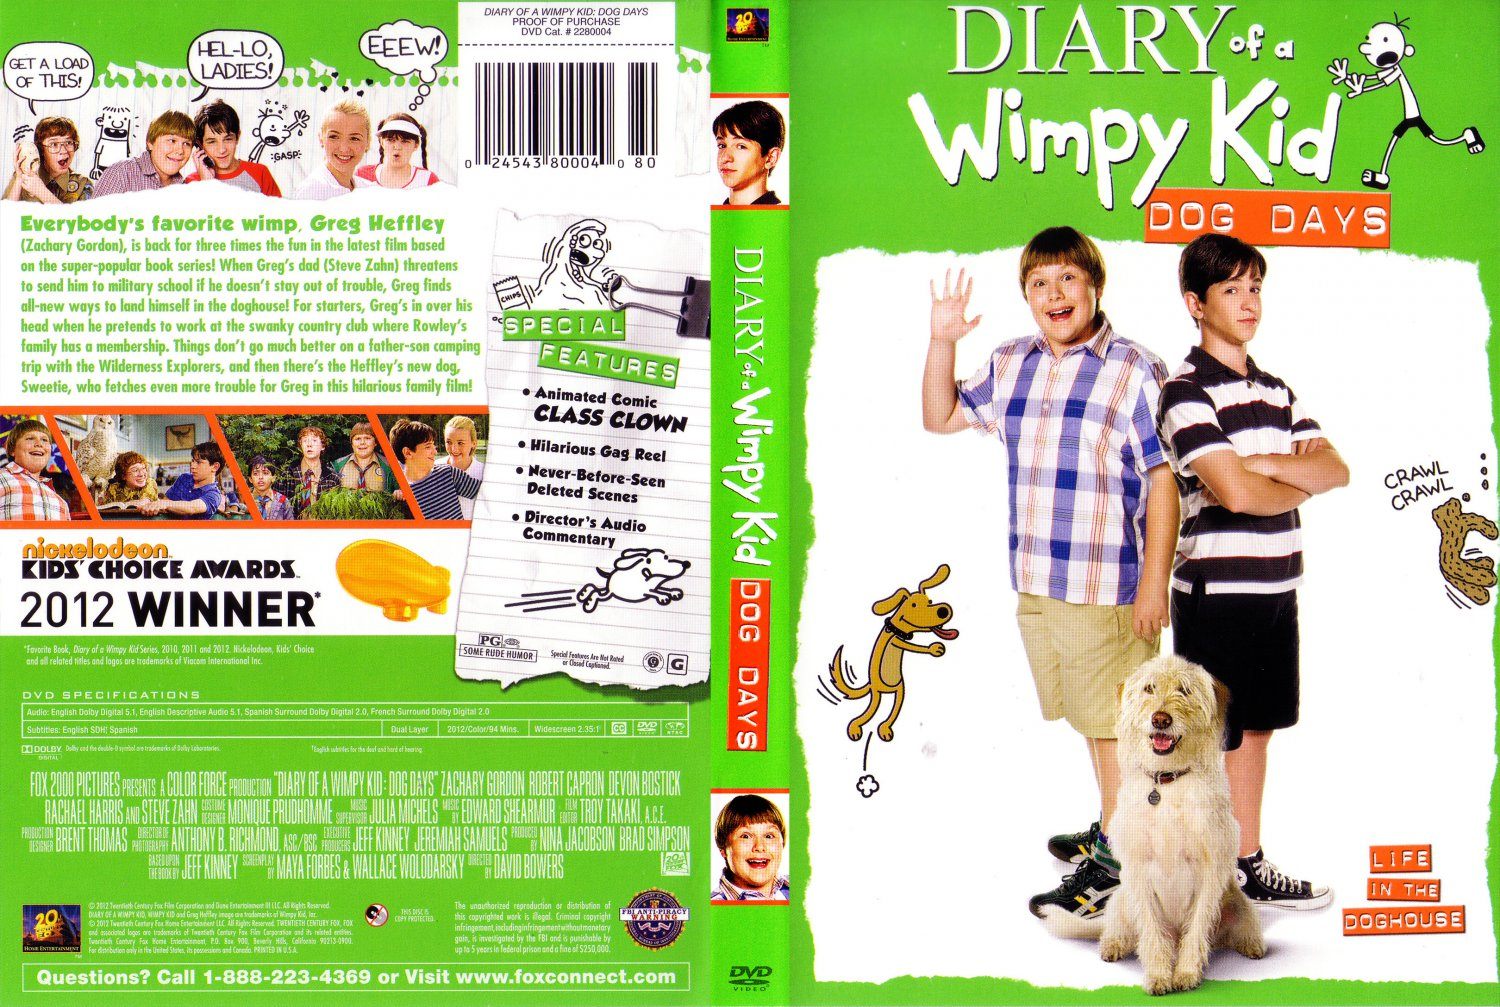 Diary Of A Wimpy Kid Movie Dog Days Full Movie